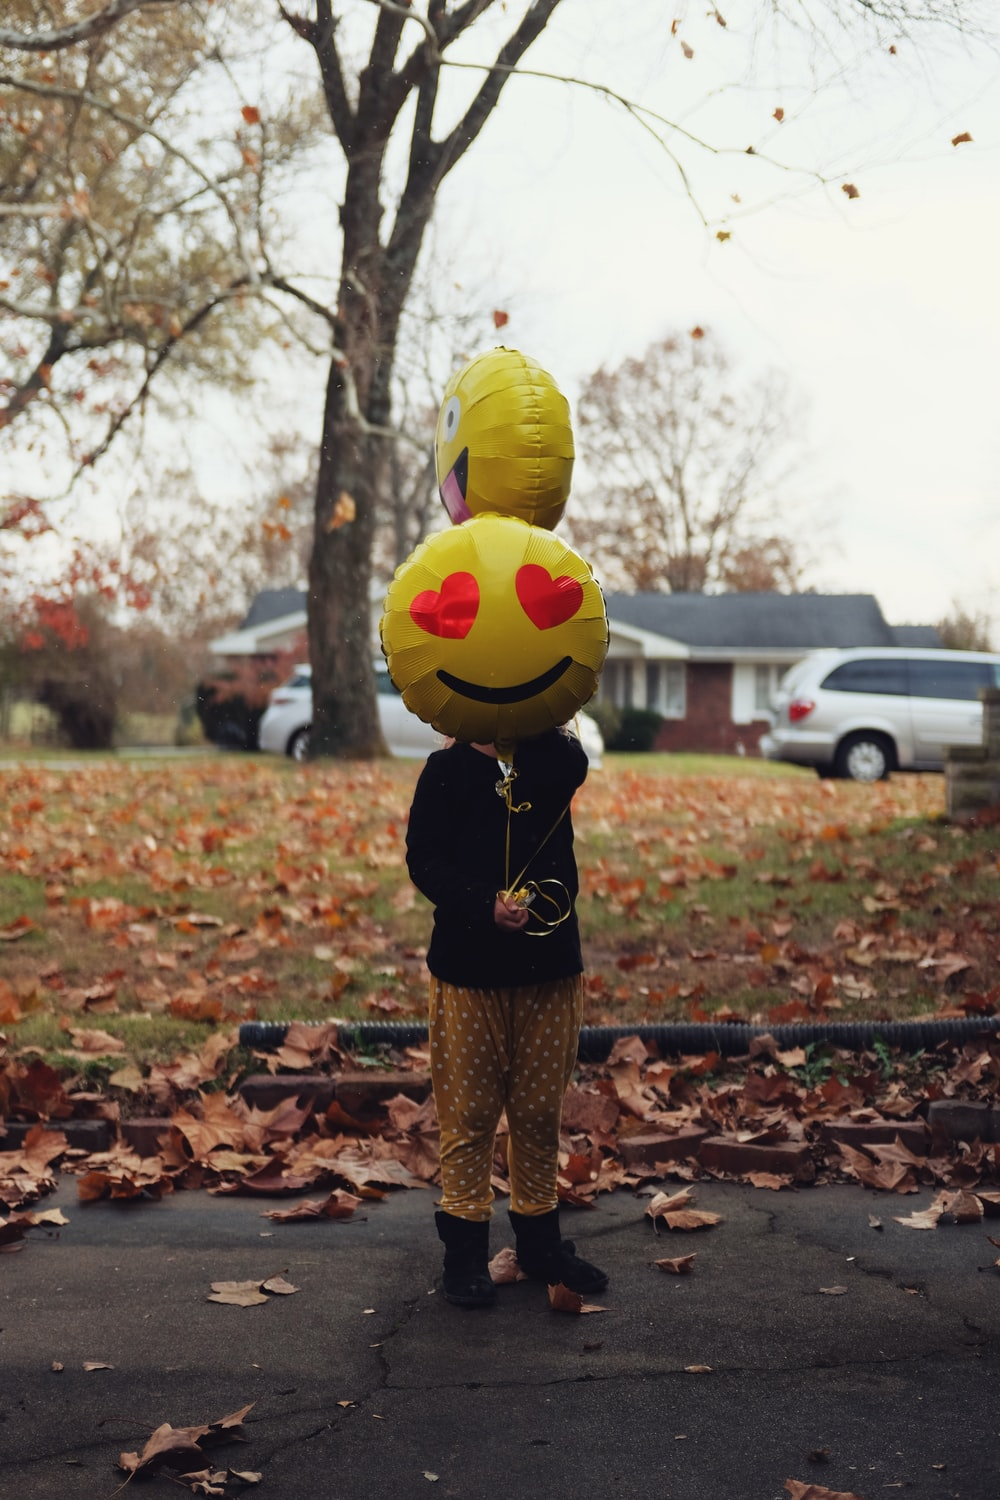 person holding smiley balloons near tree